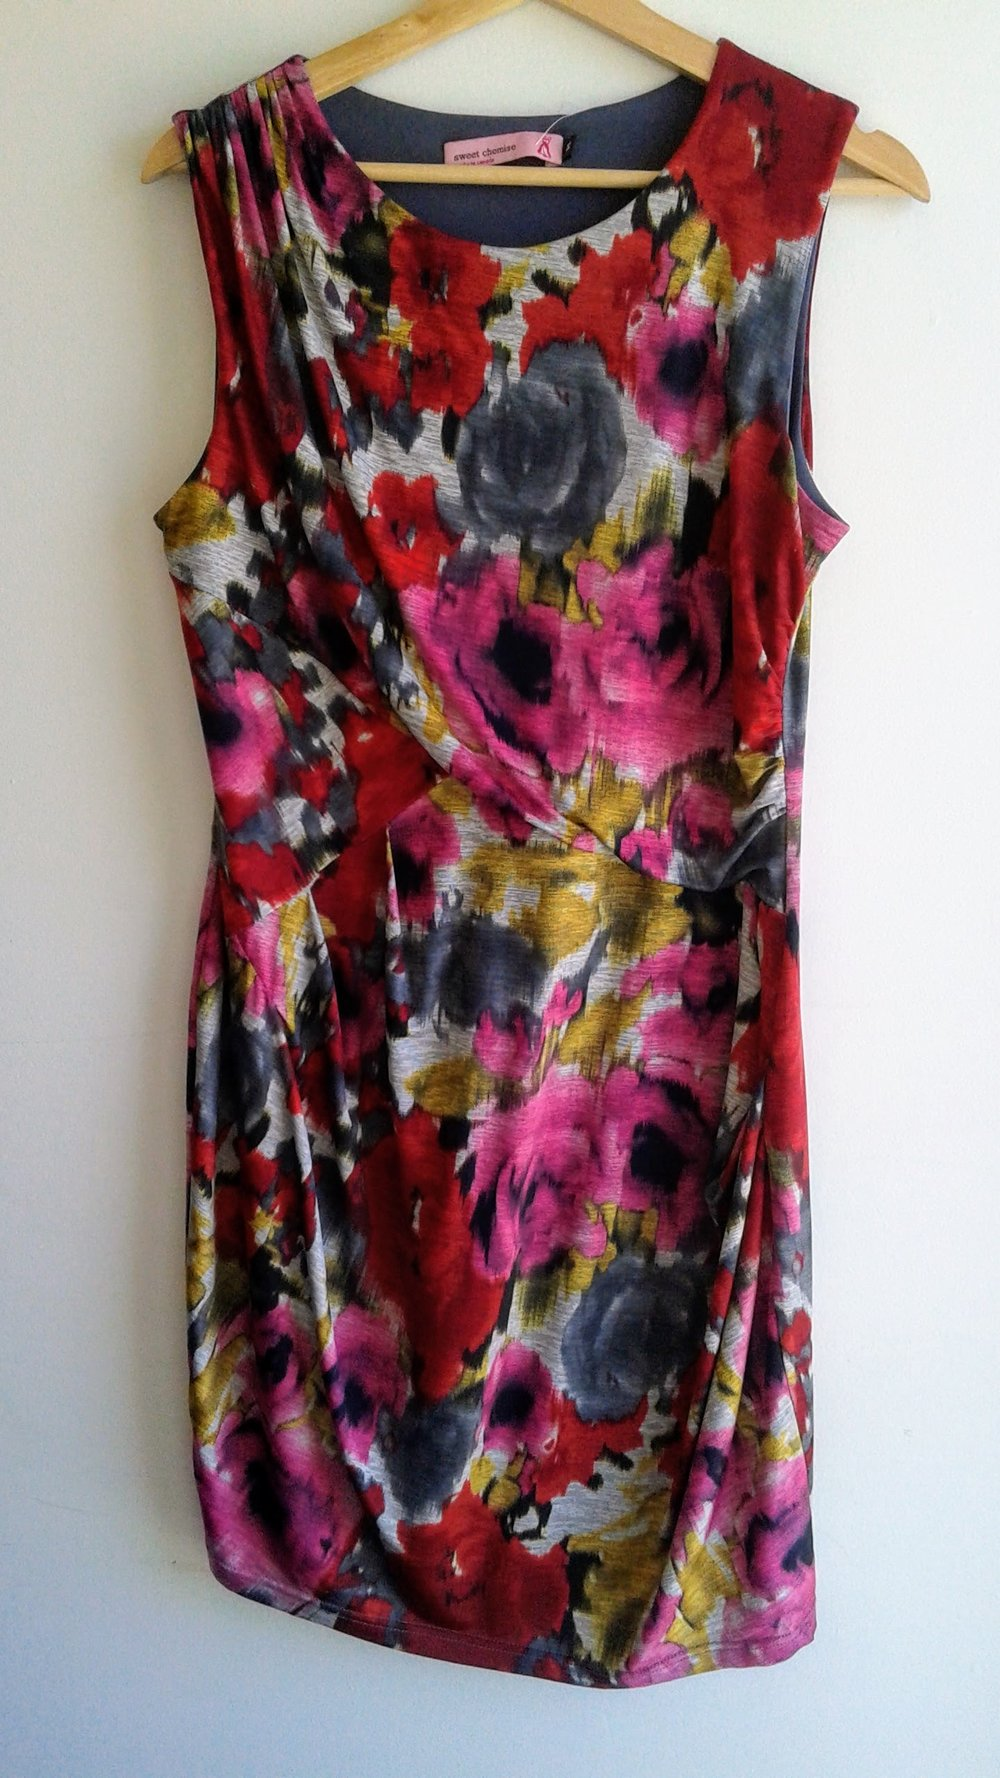 Sweet Chemise dress; Size M, $28